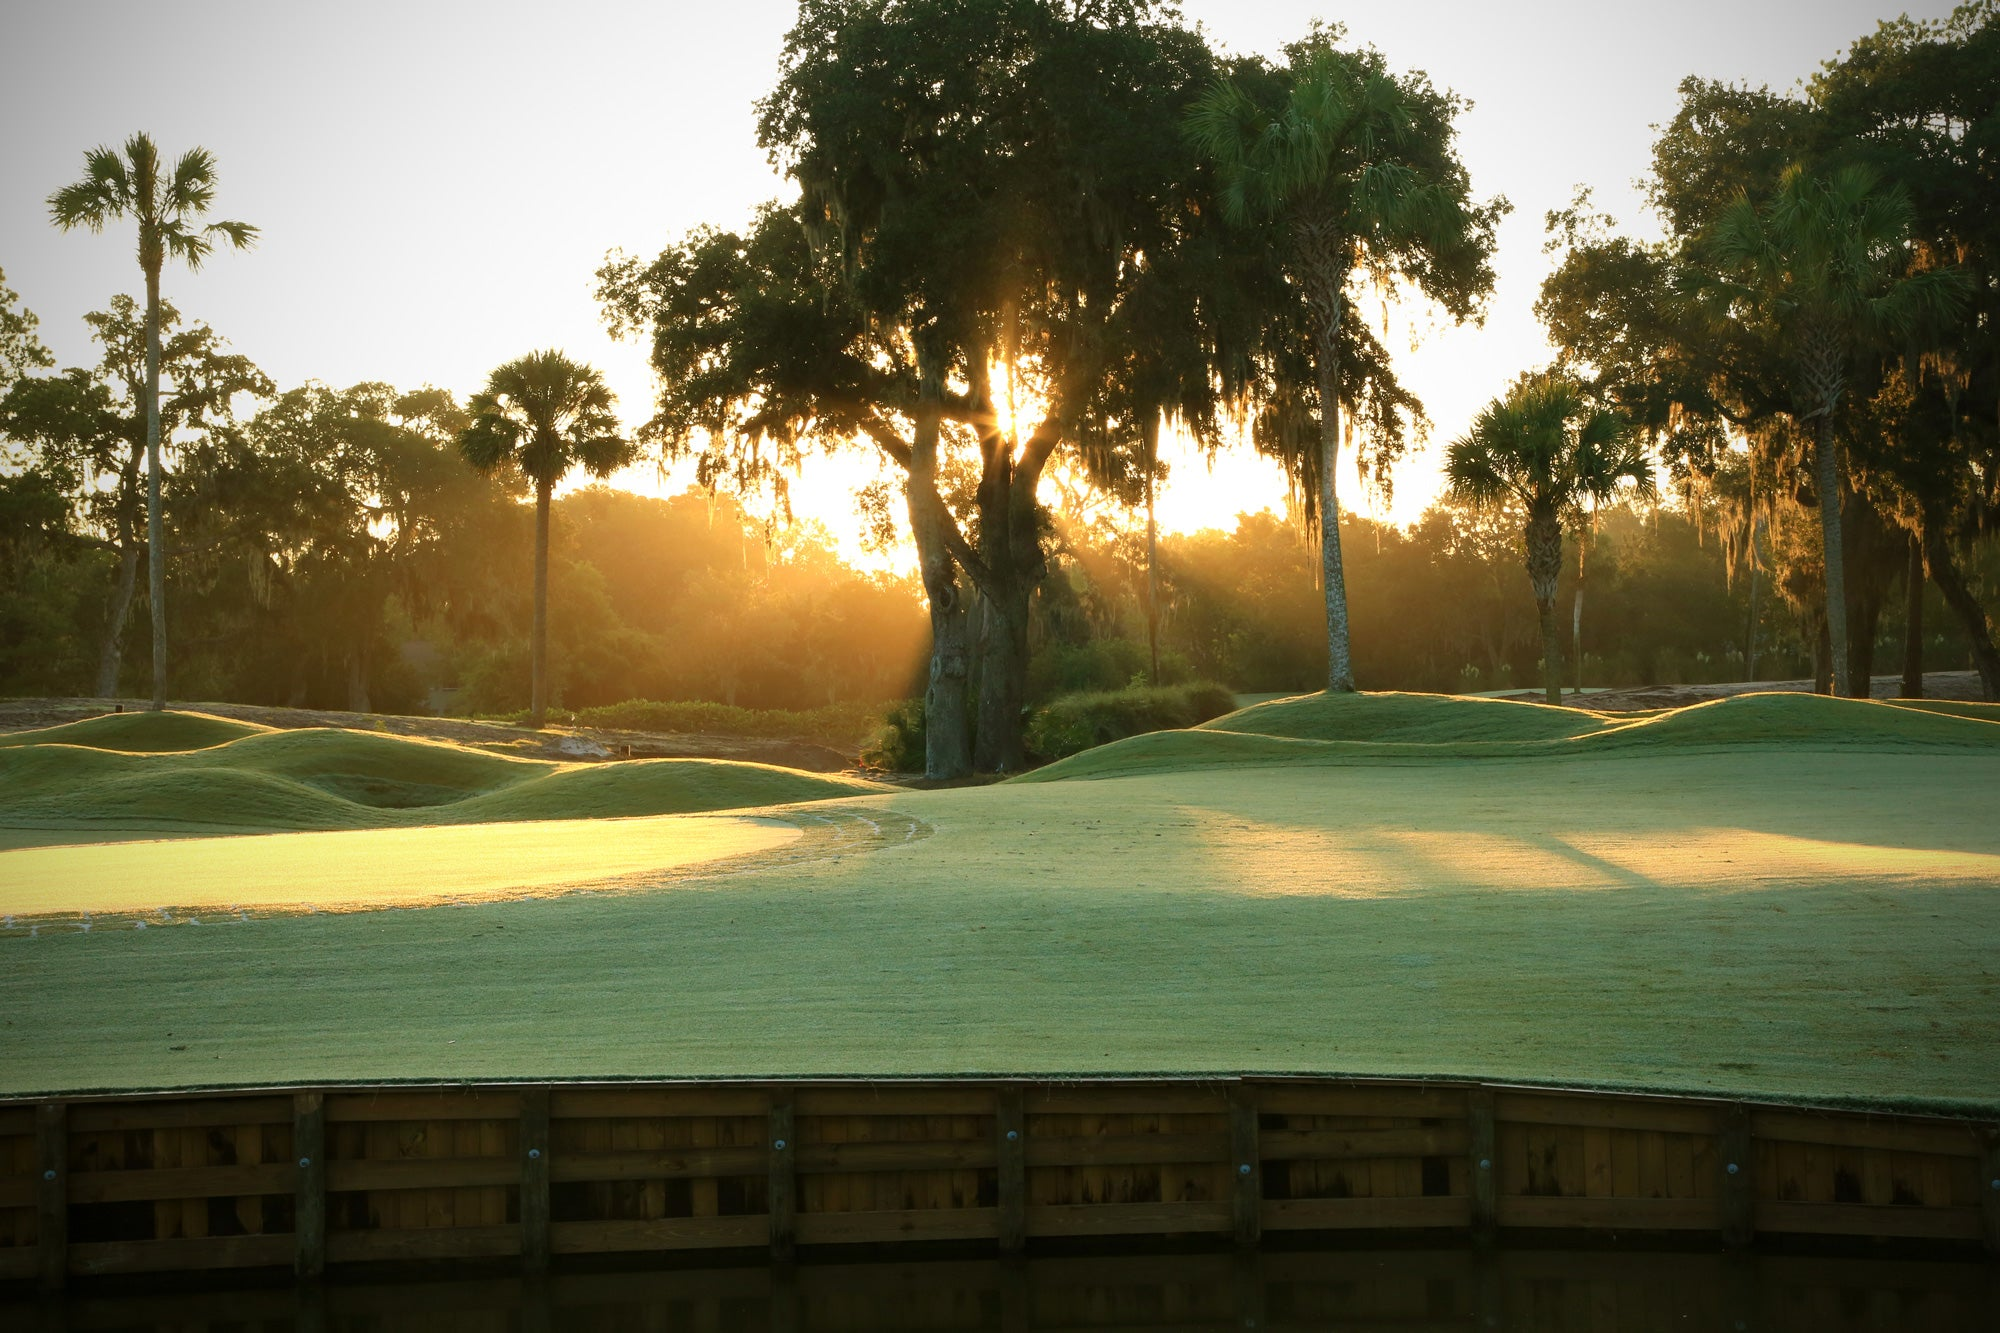 TPC Sawgrass (Players Stadium), $495: Ben Crenshaw once dismissed it as